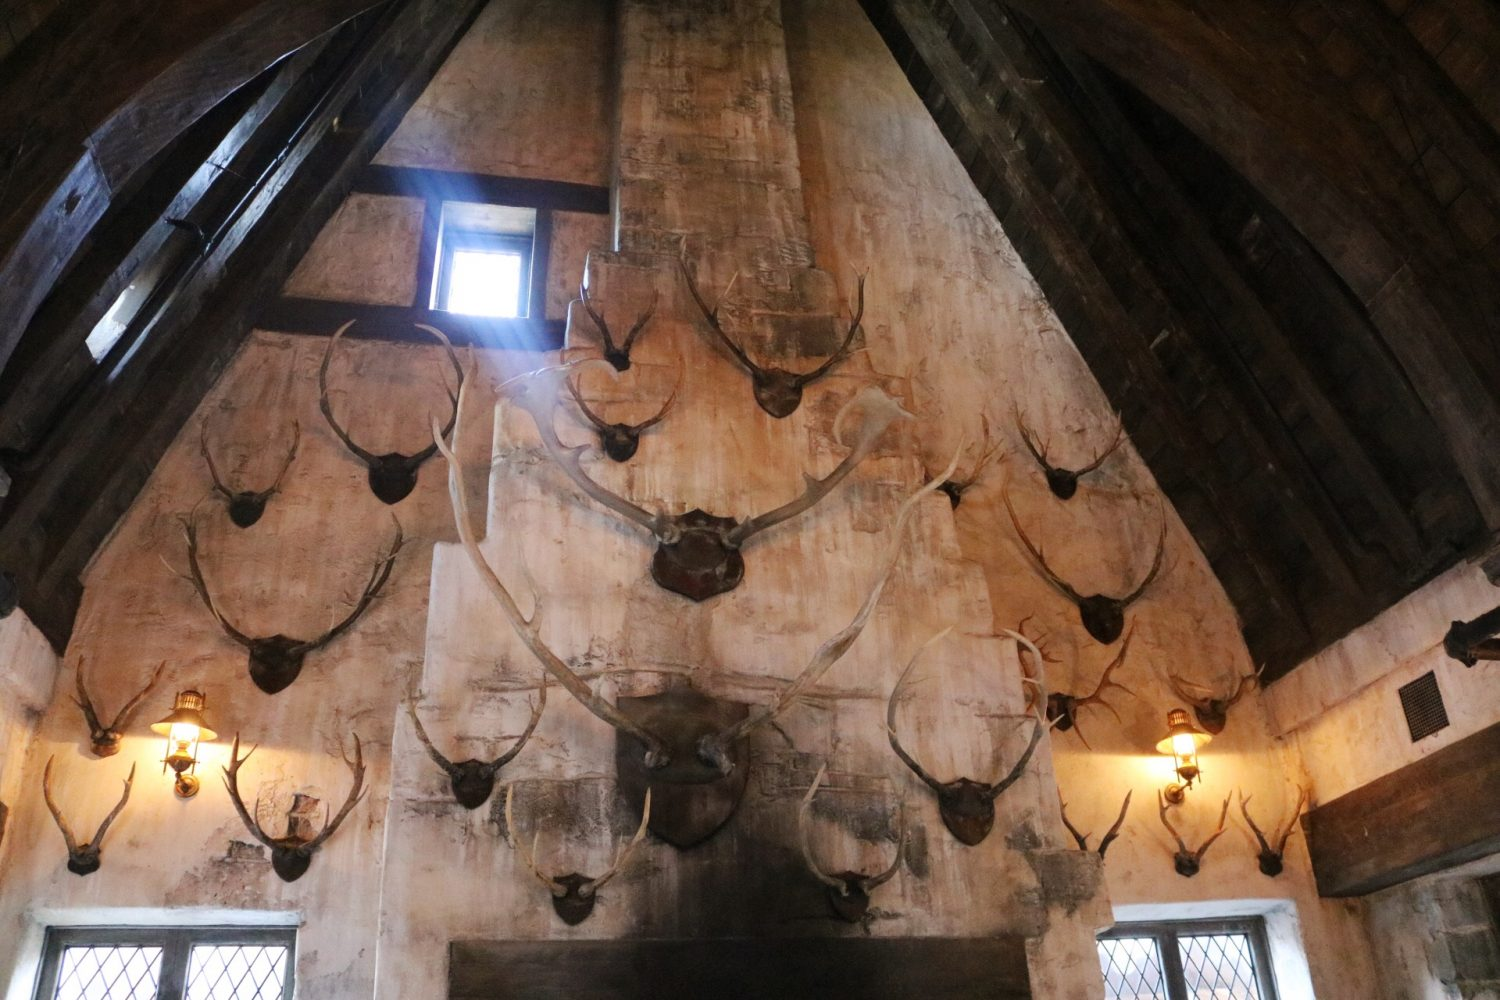 The Three Broomsticks | Wizarding World of Harry Potter